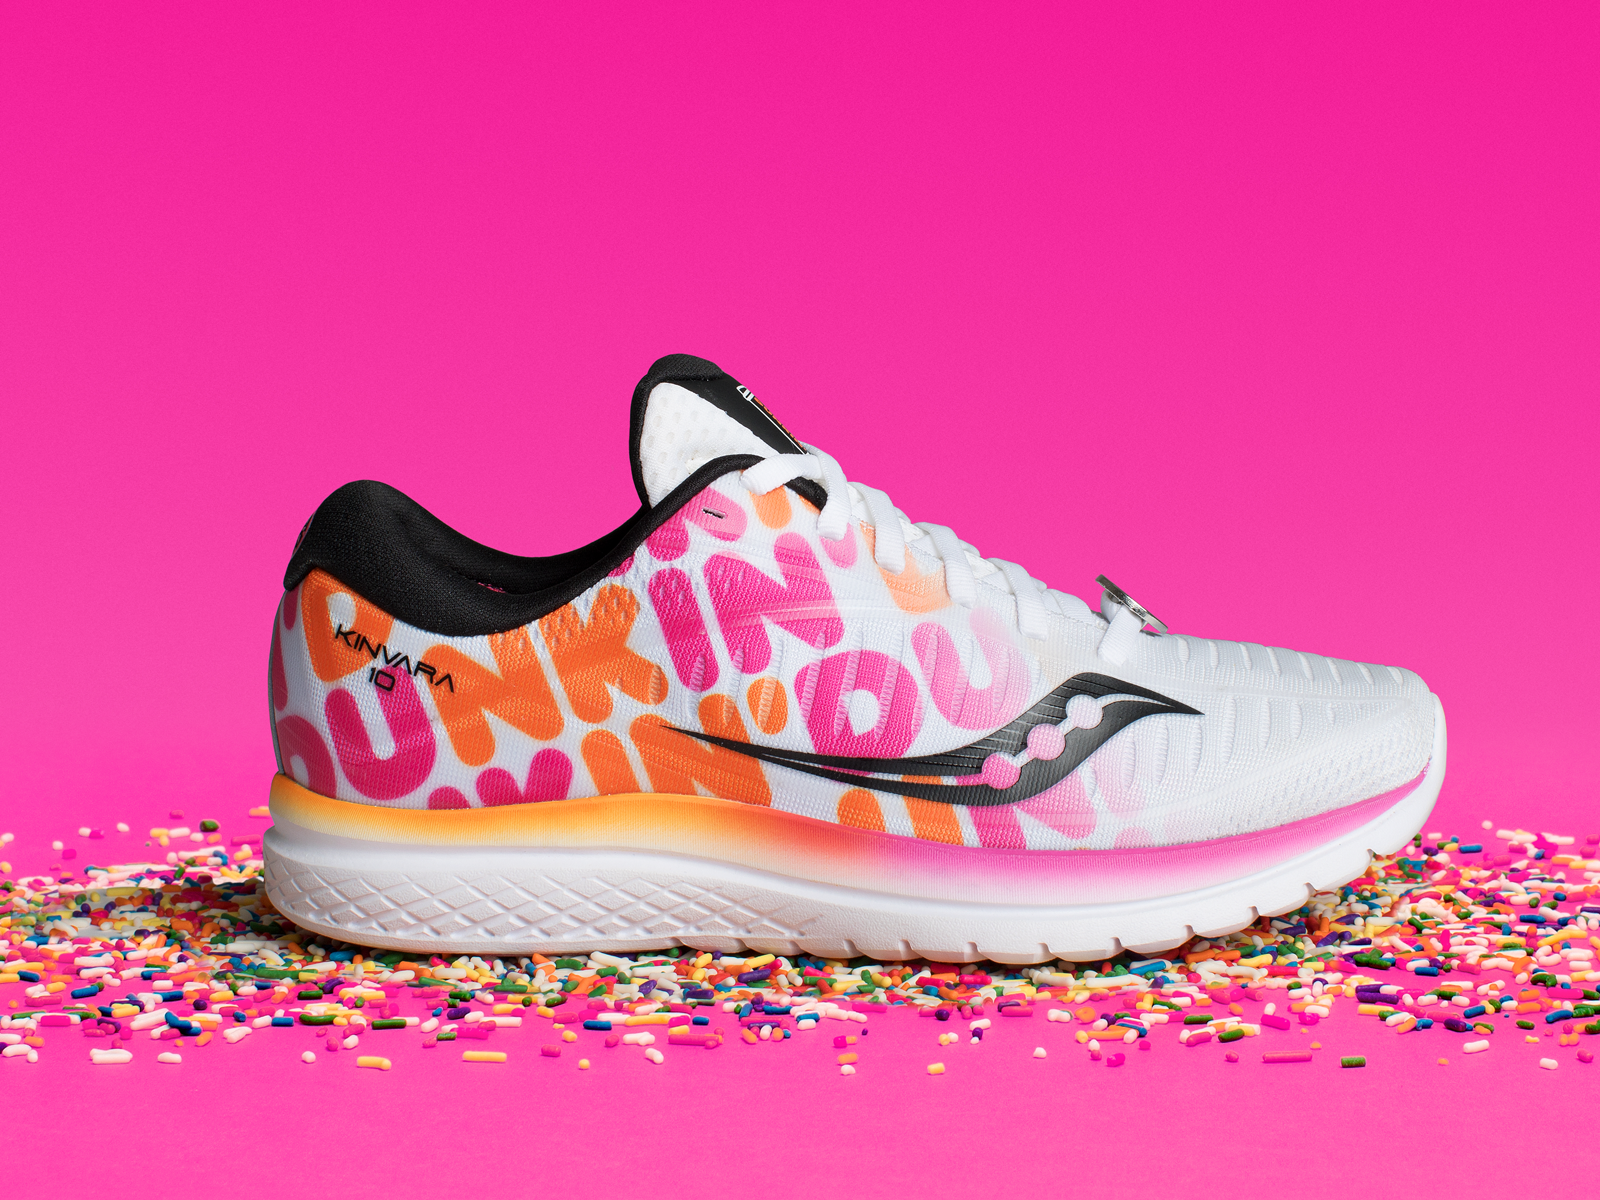 Saucony Dunkin Boston Marathon shoe collaboration